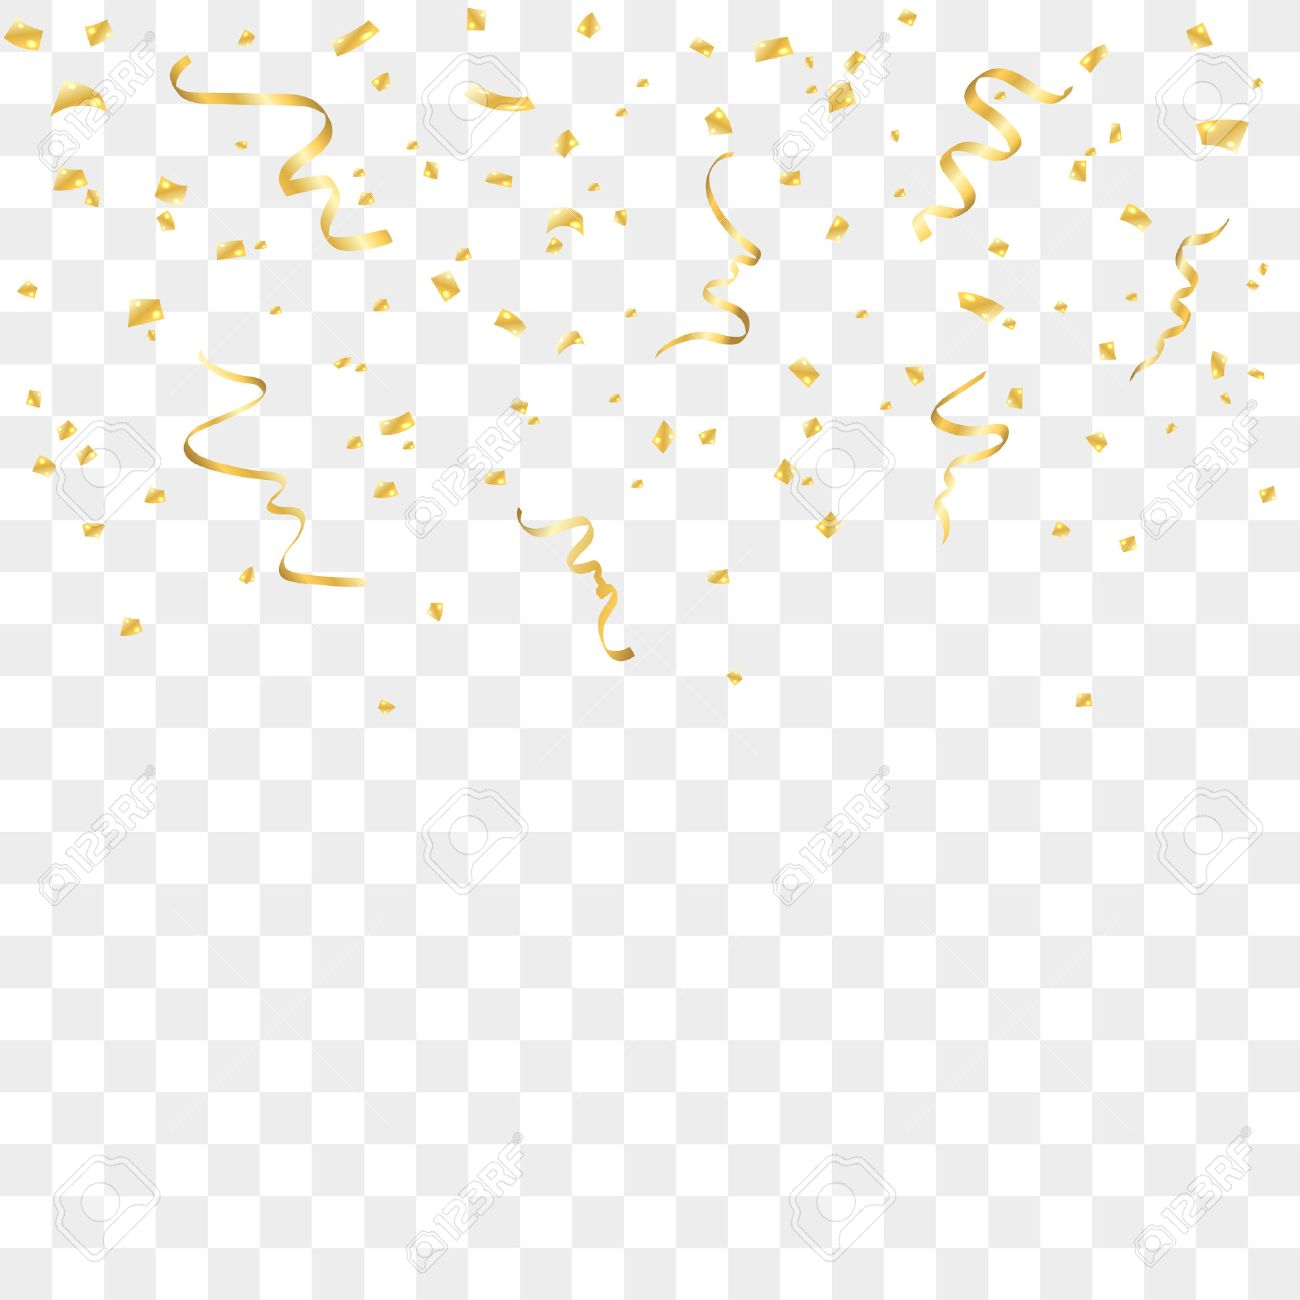 Gold confetti celebration isolated on transparent background.